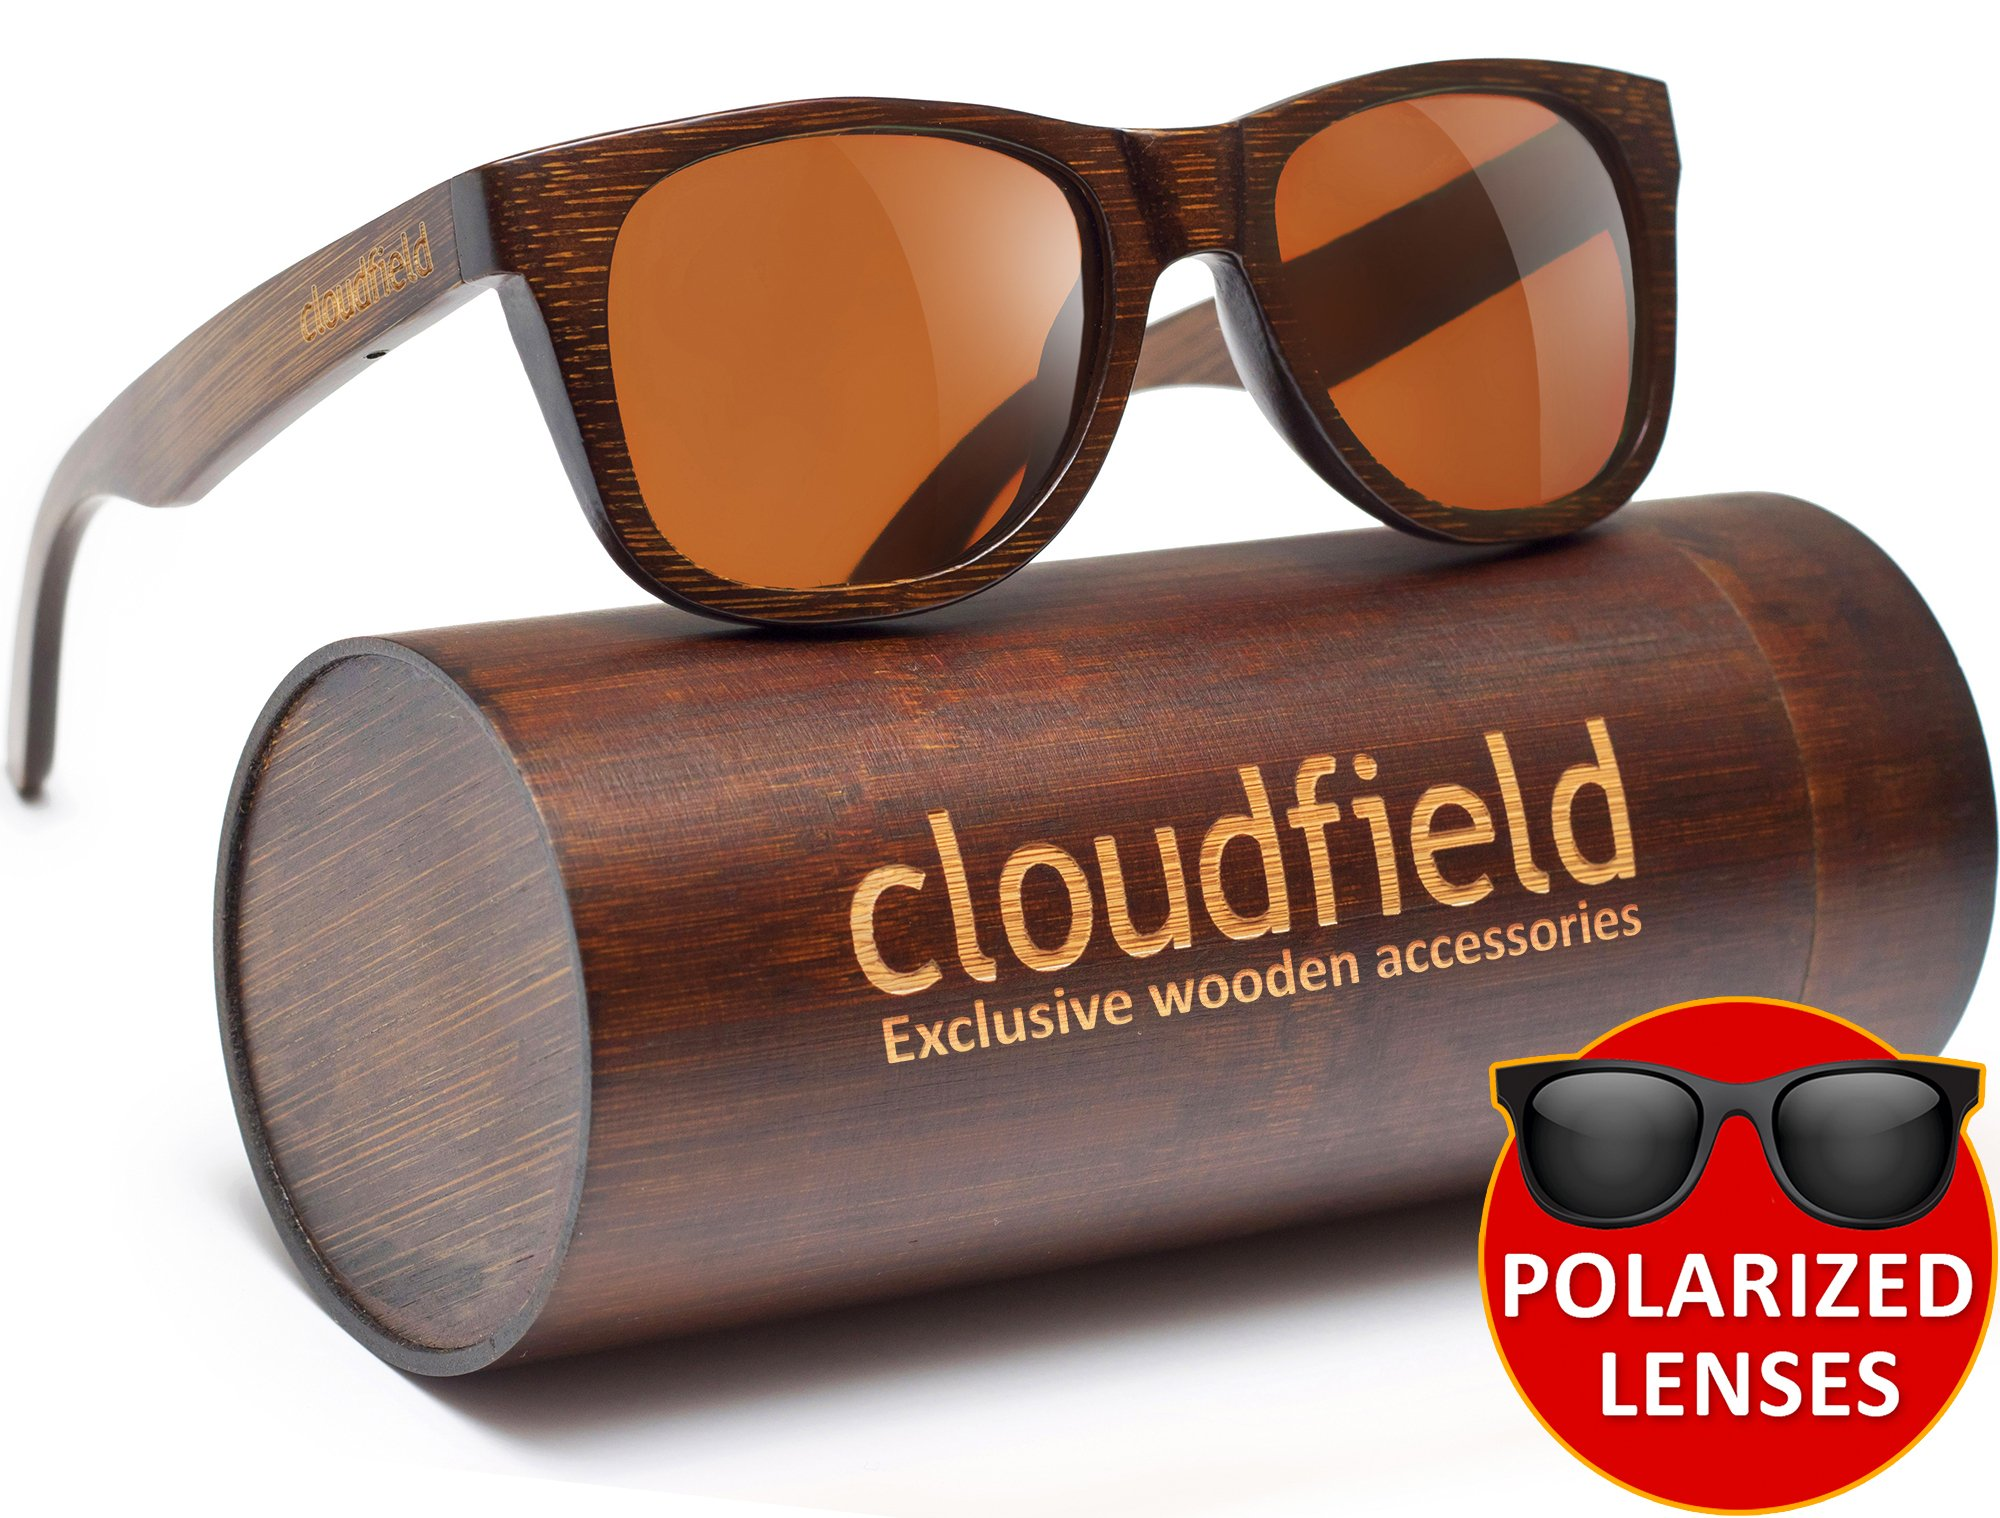 Wood Sunglasses Polarized for Men and Women by CLOUDFIELD - Wooden Wayfarer Style - 100% UV 400 Protection - Premium Build Quality - Bamboo Wooden Frame - Perfect Gift by cloudfield